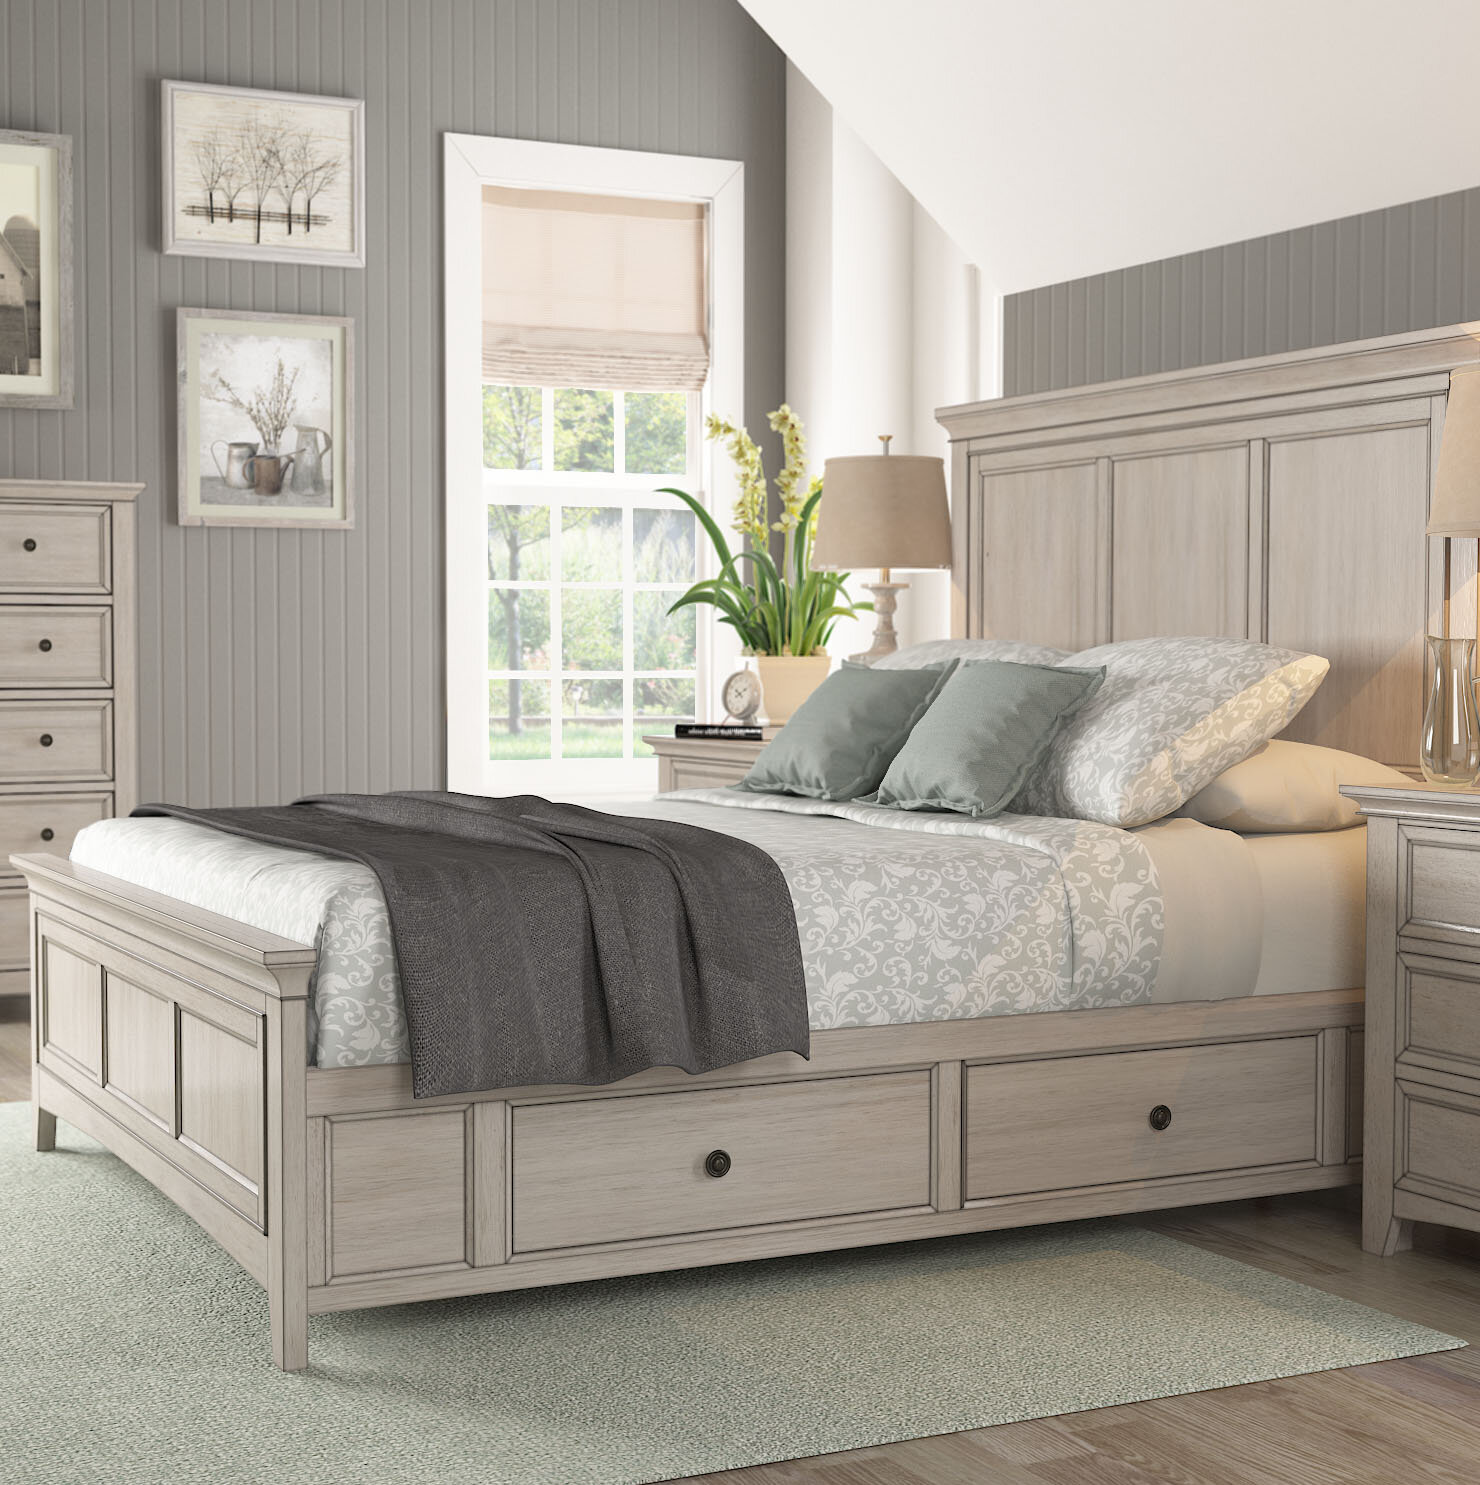 Queen Beds Bed Frames With Storage You Ll Love In 2021 Wayfair